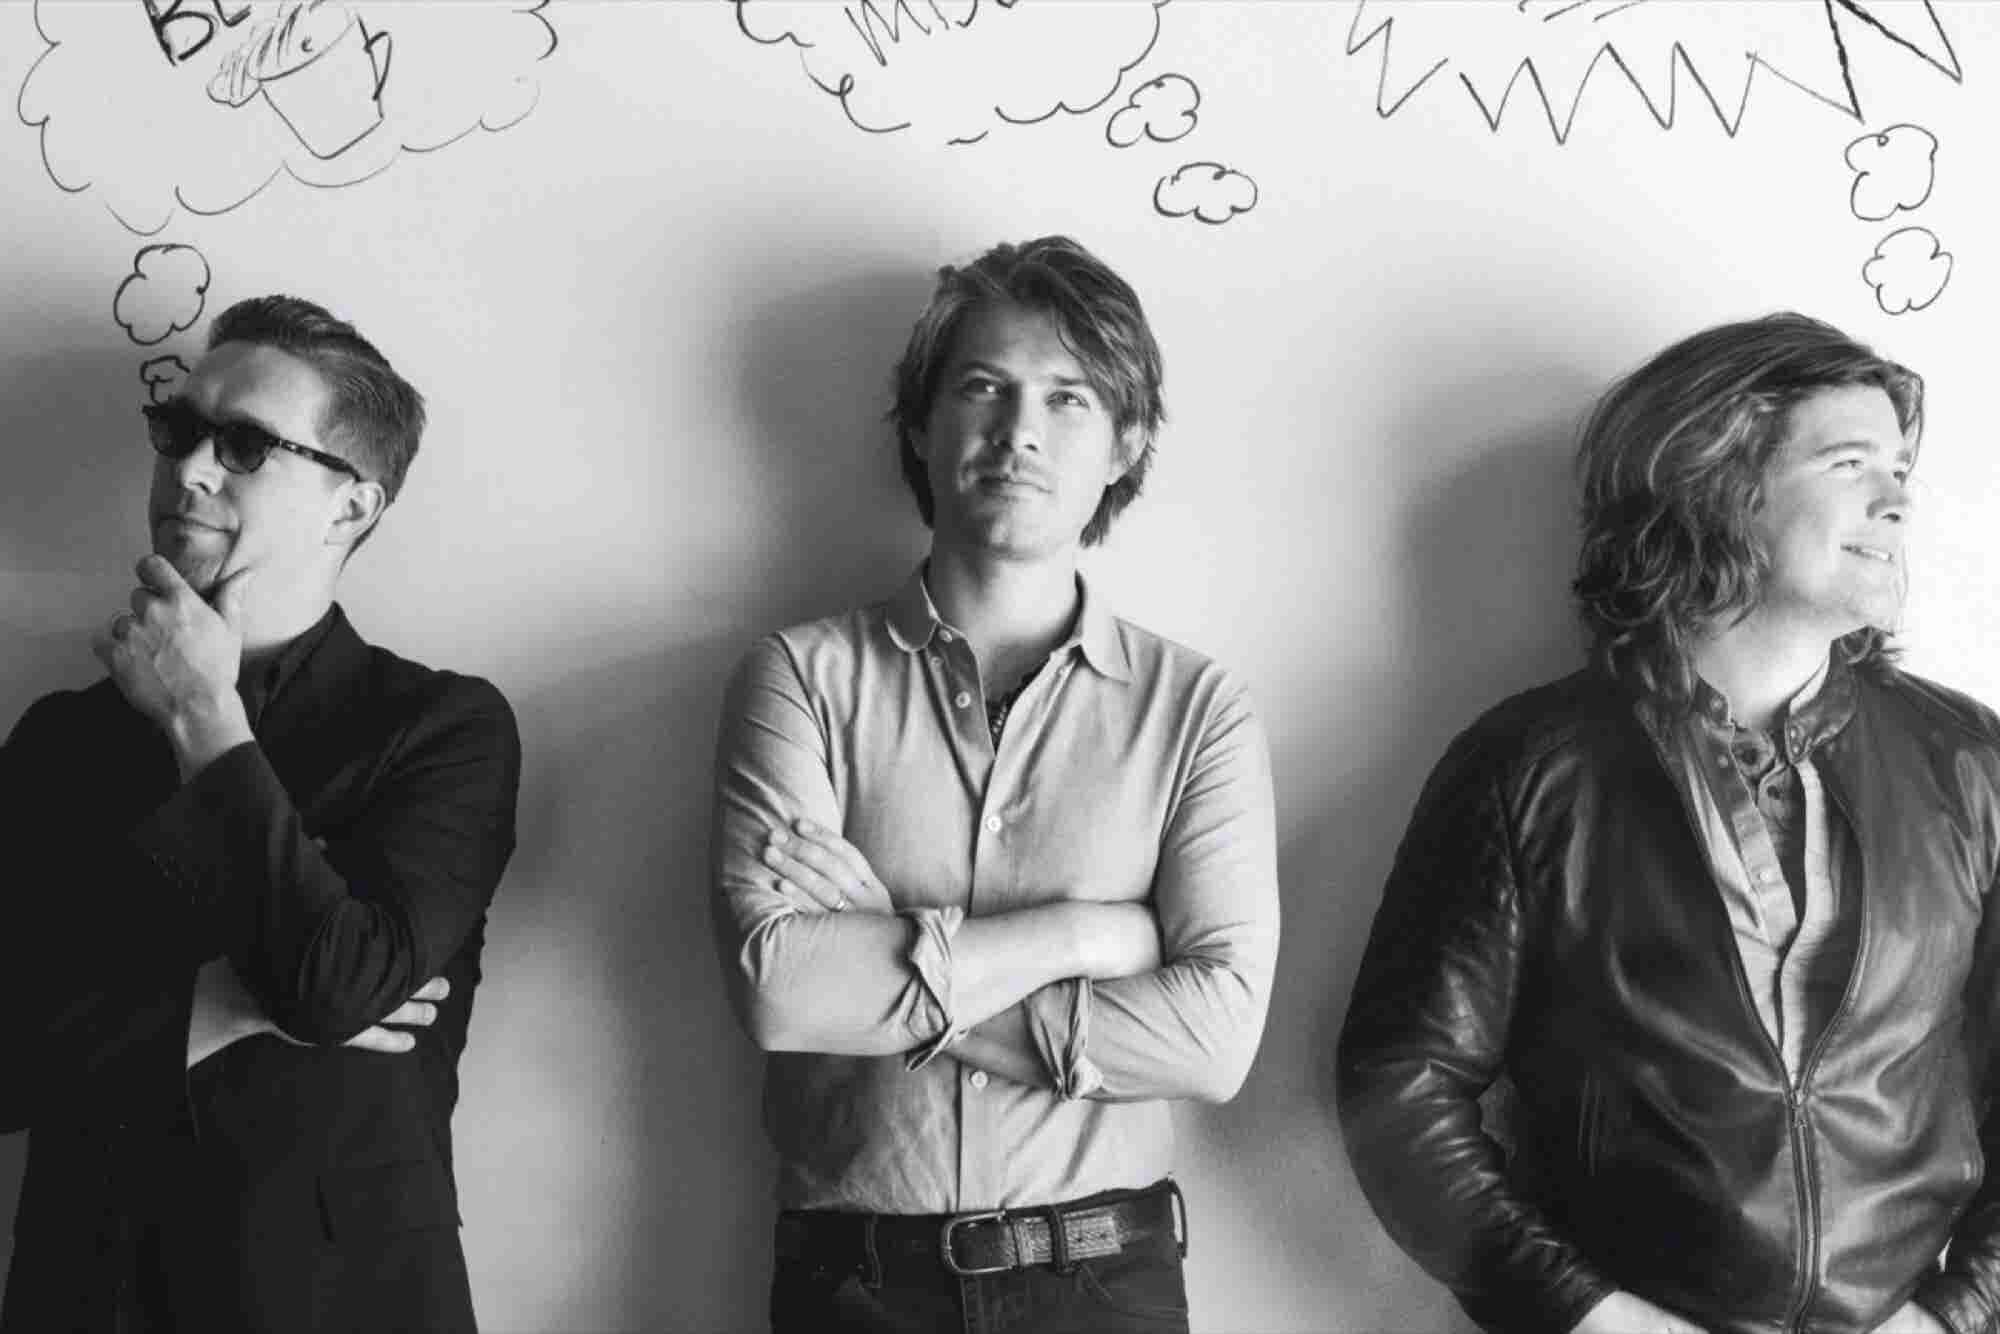 Join Hanson for a Live Video Chat Today at 1 p.m. ET